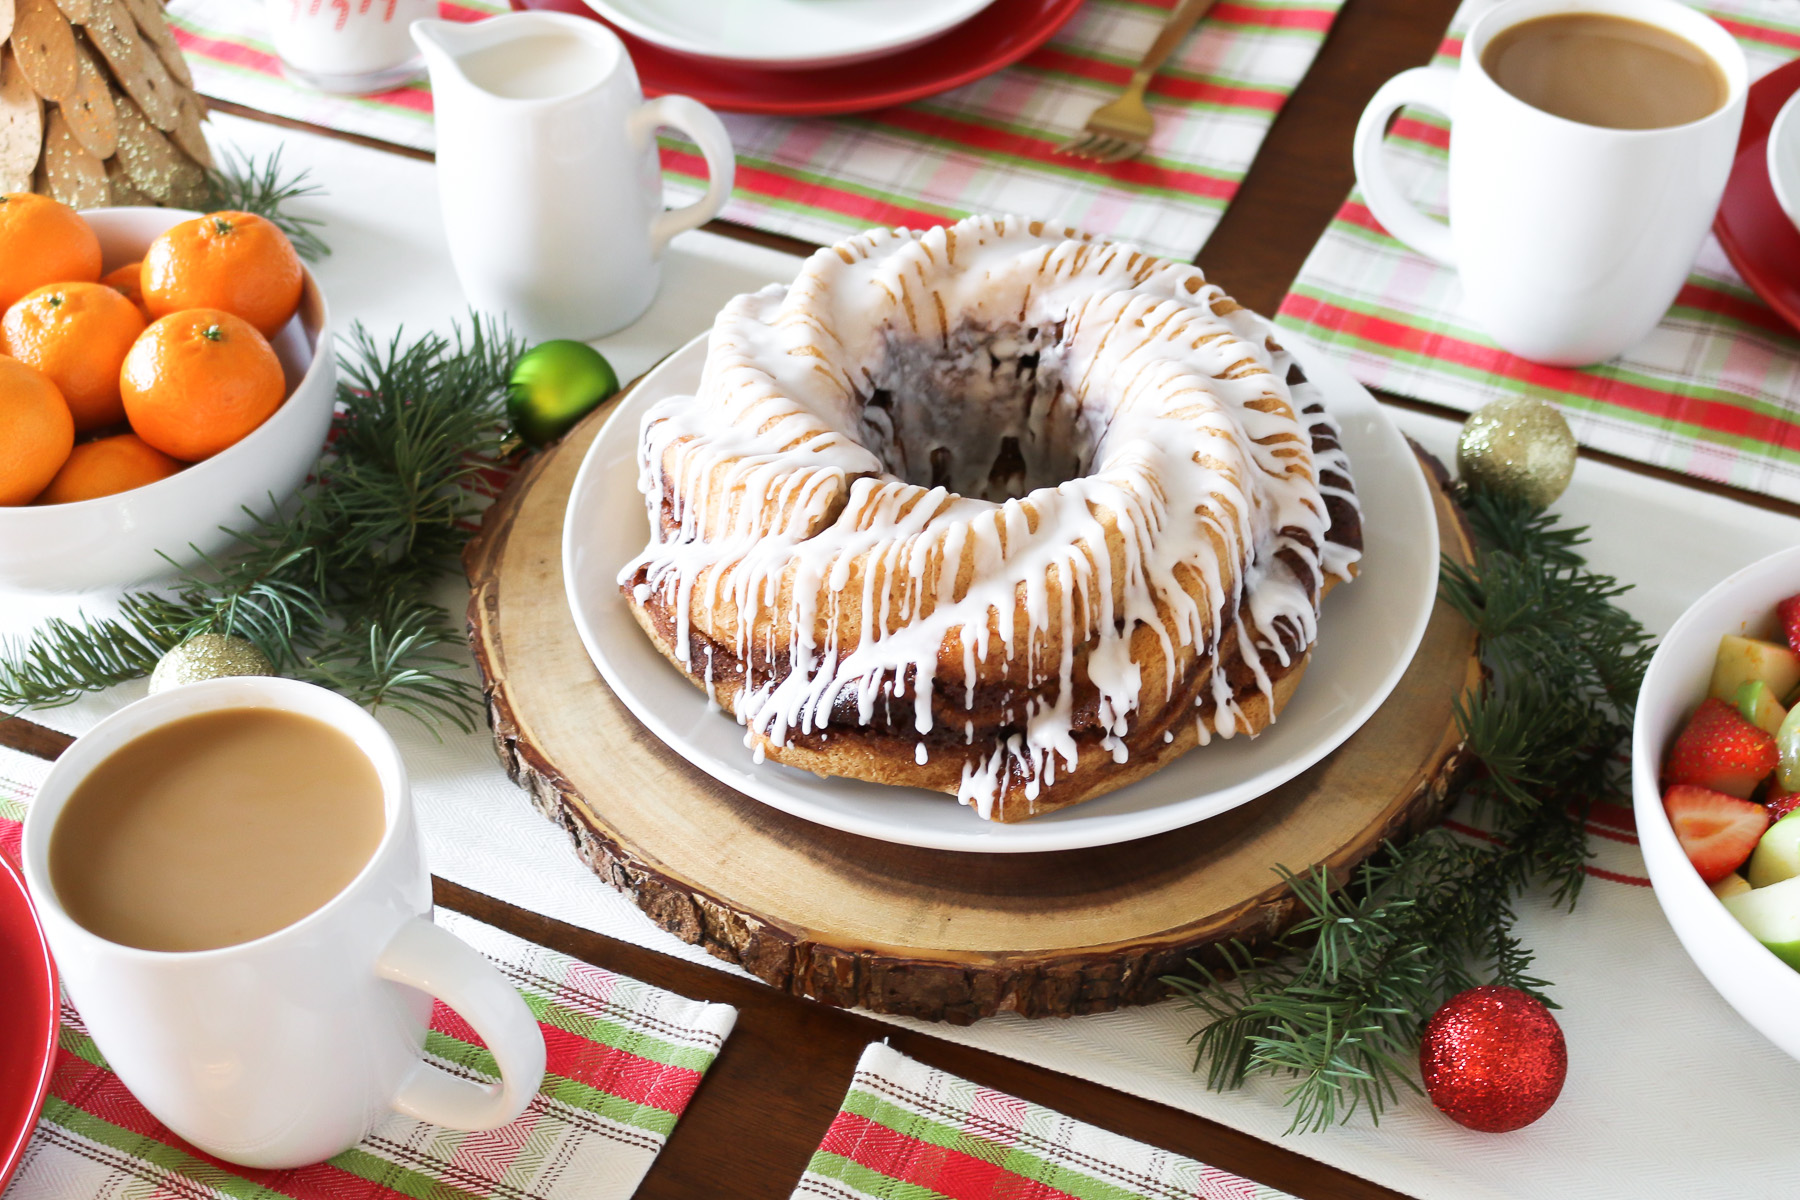 Gluten Free Vegan Cinnamon Roll Coffee Cake. Layers of light vanilla cake and cinnamon sugar, baked to perfection. A beautiful centerpiece for your holiday brunch!